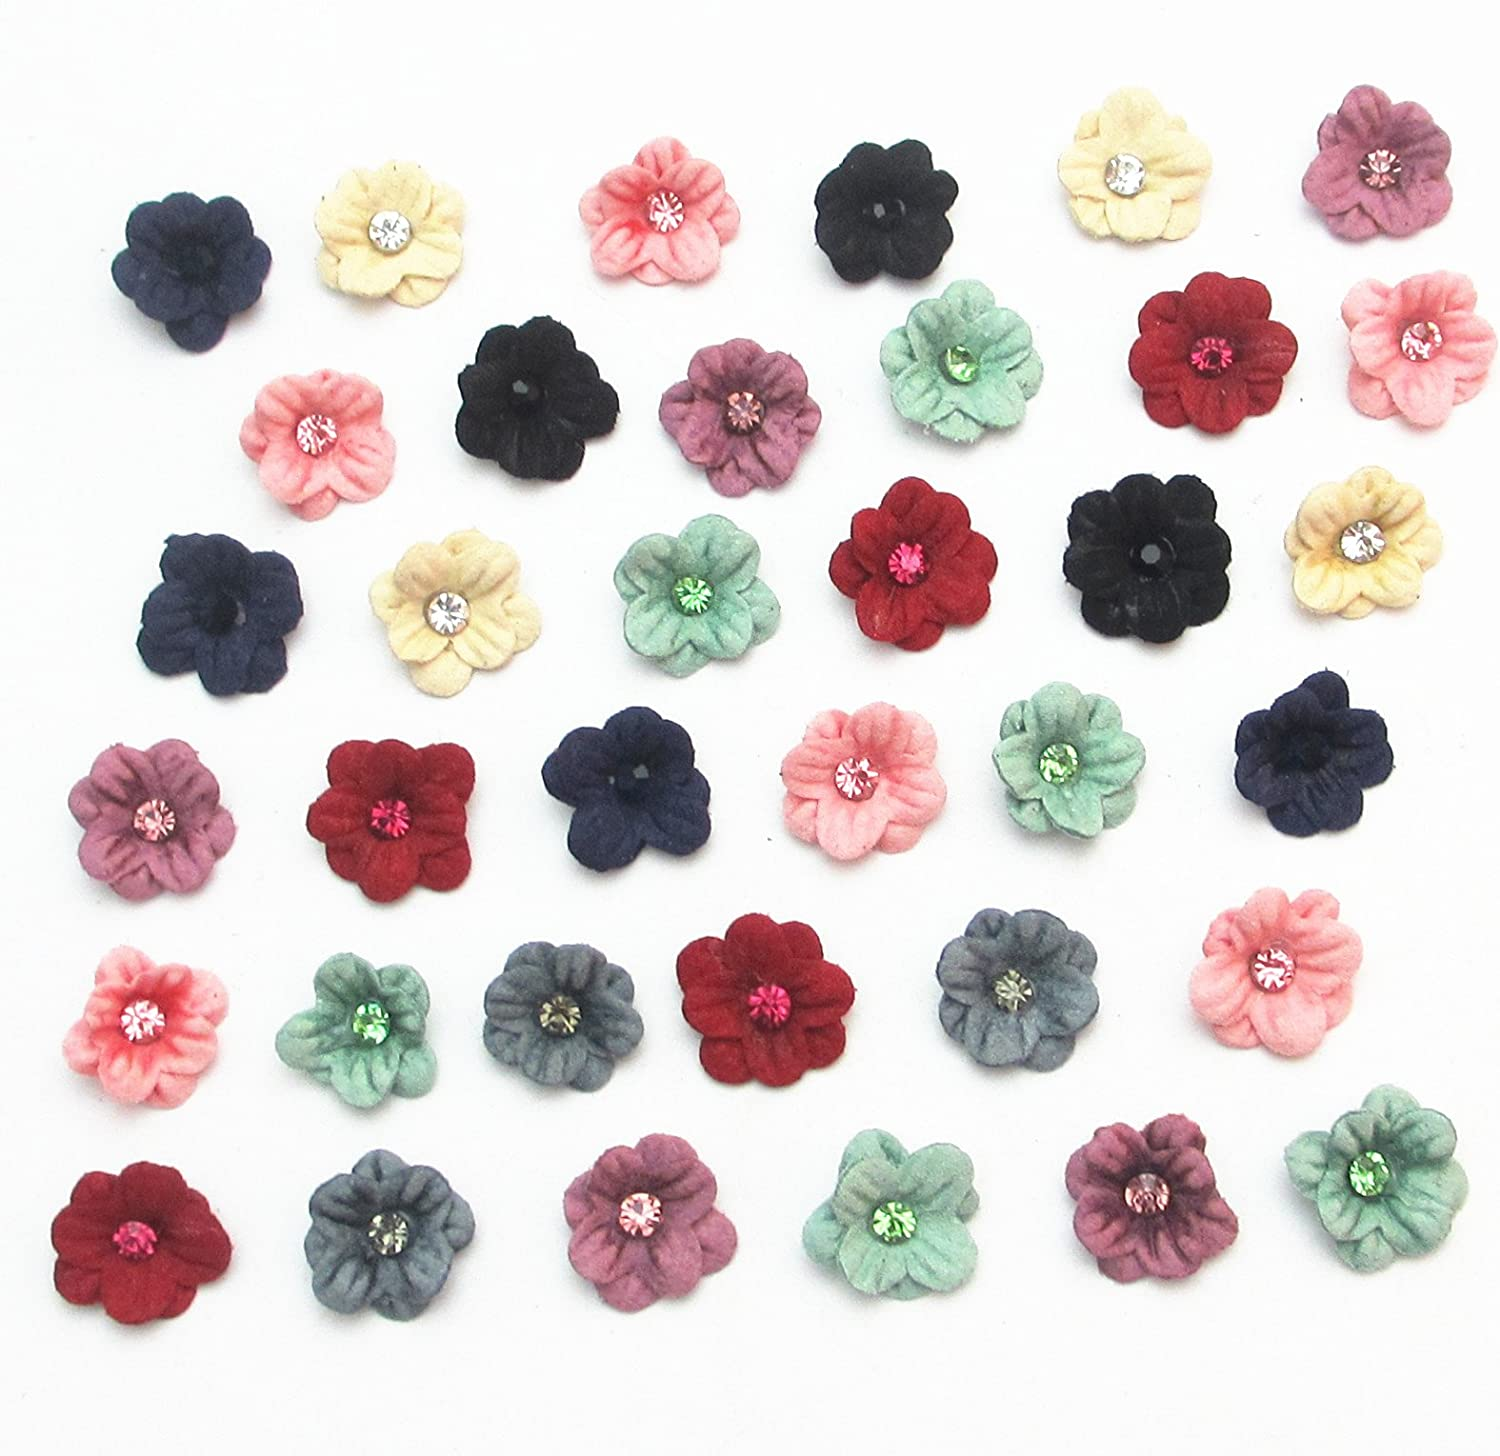 Zhanyue Embellishment 40pcs Assorted Colors 15mm Fabric Flowers with Shiny Rhinestone Ribbon Flowers Appliques for Clothes Sewing Home Curtain Wedding Decoration Flower Diy Craft DDA0503MIX